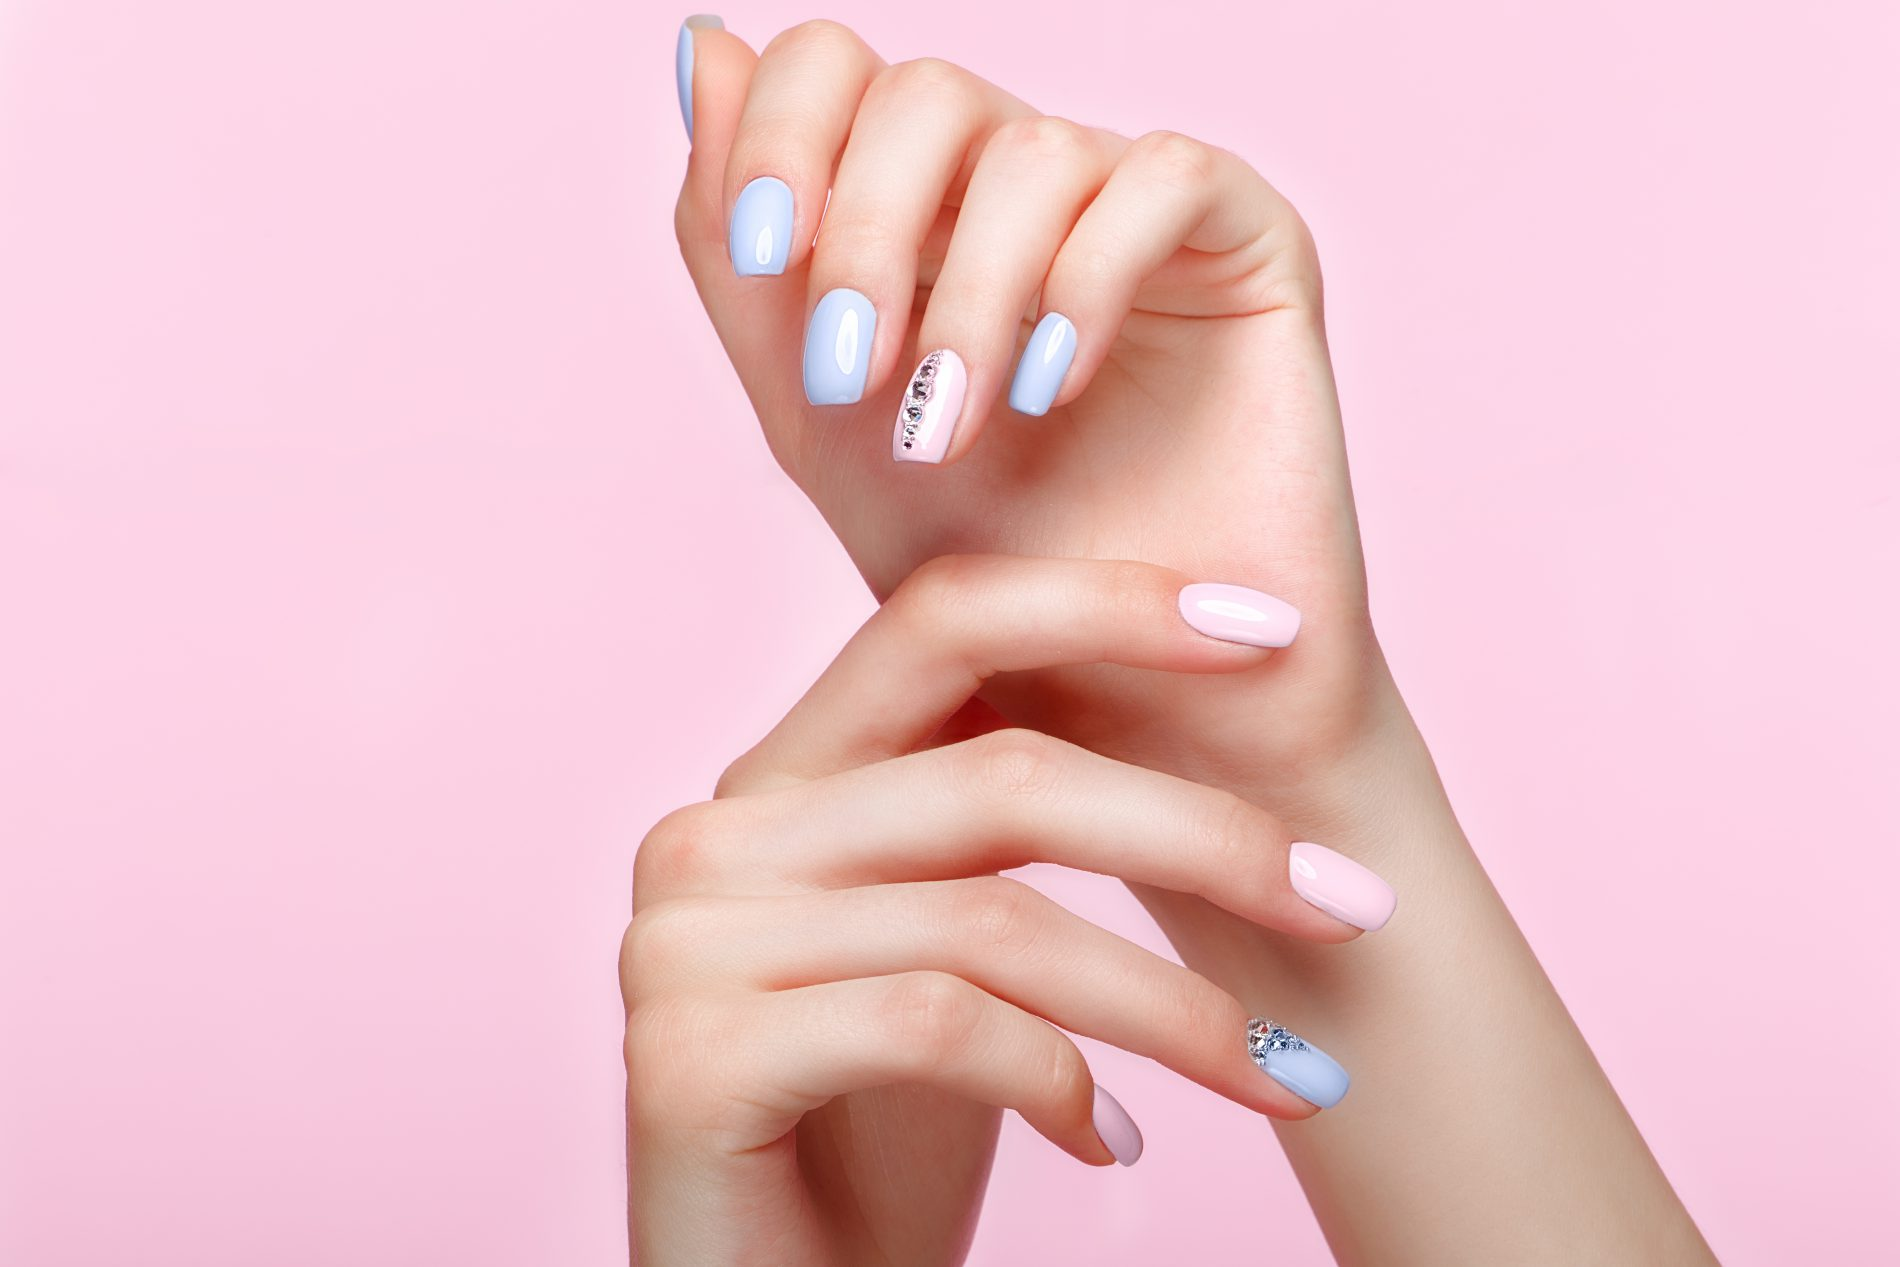 manicured nails with pink and blue acrylic polish